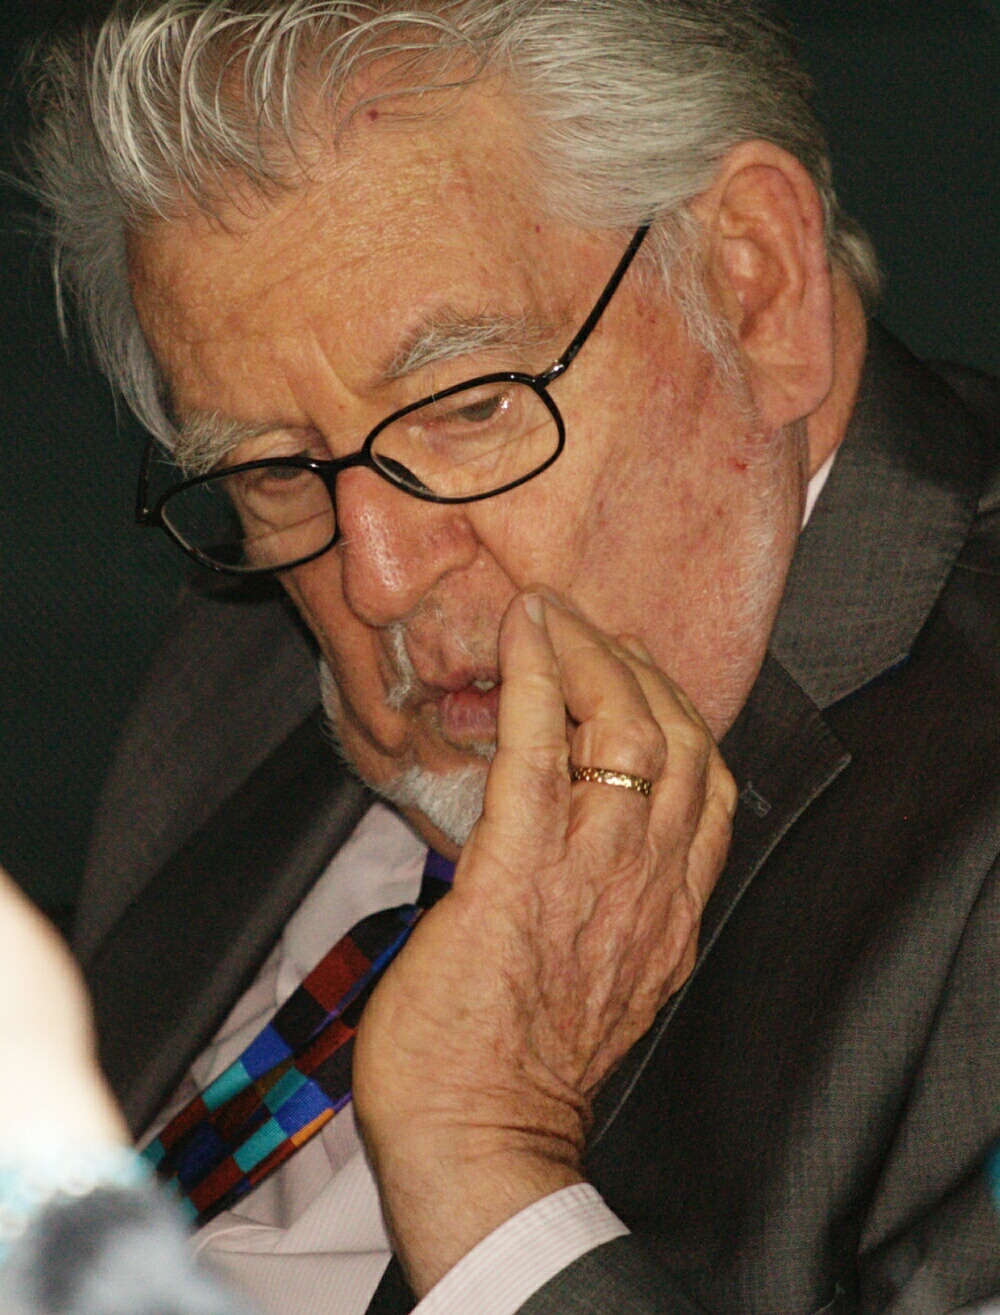 Rolf Harris 'slobbered over a blind woman' at eye hospital